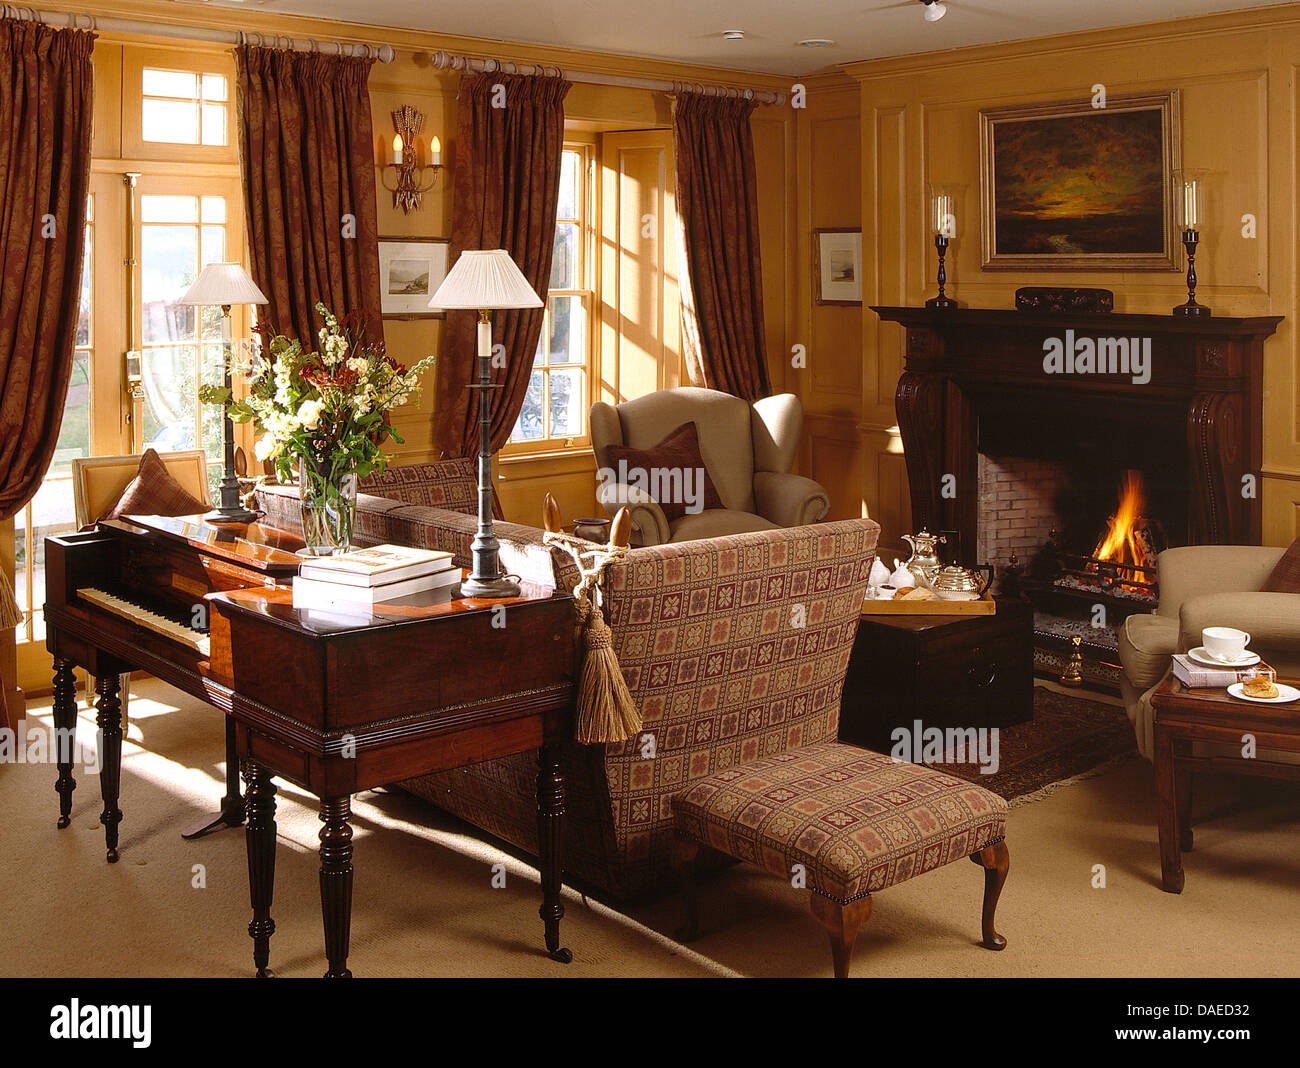 Antique Spinet Piano Behind Knole Sofa In Comfortable Country Sitting Room  With Lighted Fire In Fireplace